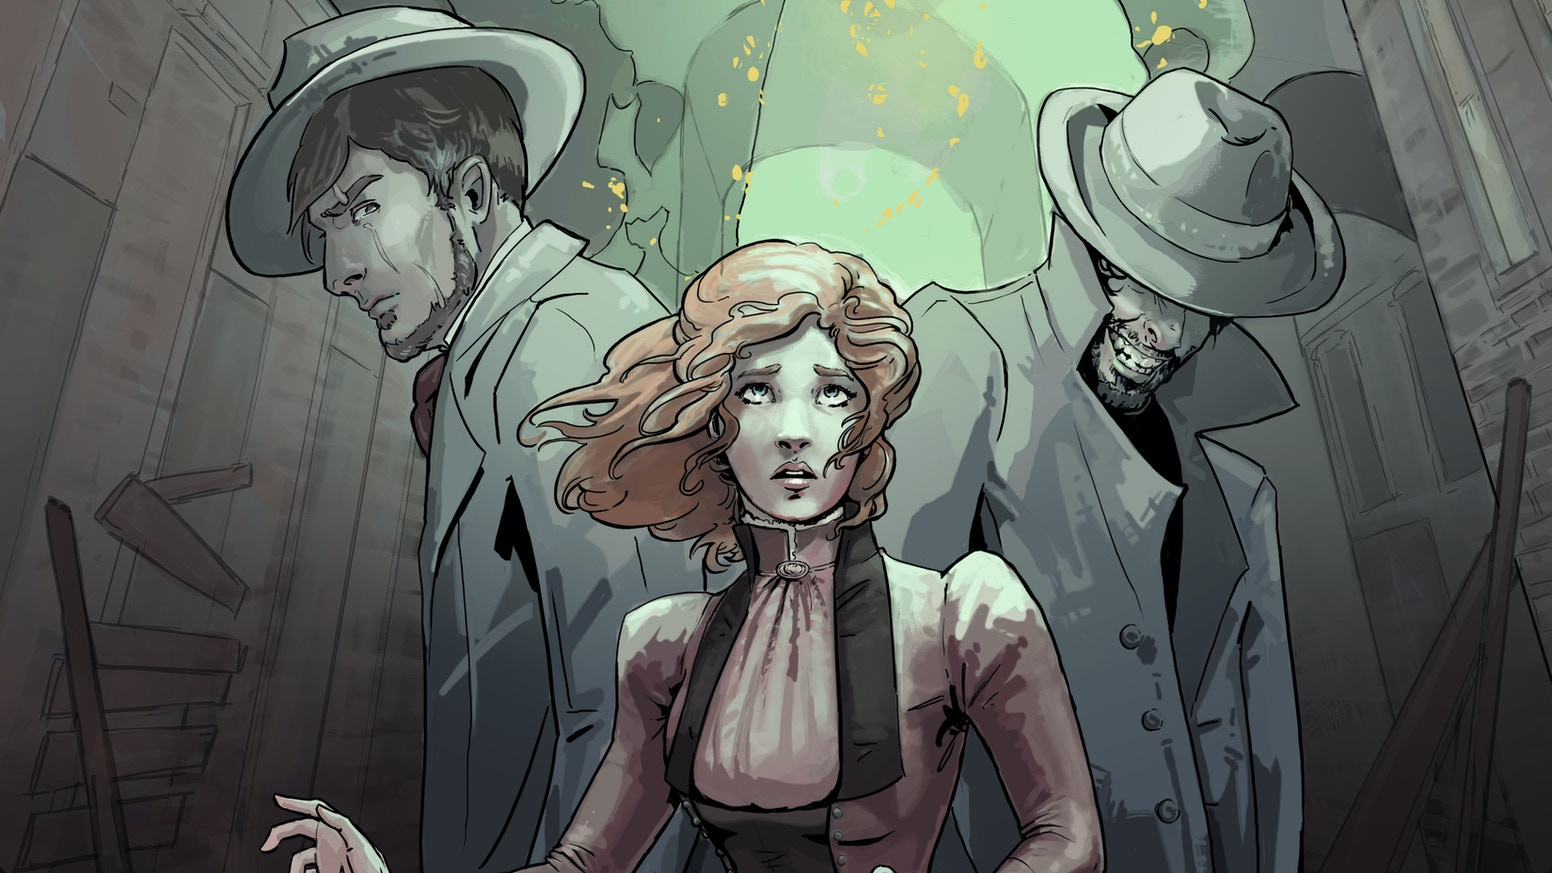 Ghosts! Steampunk! Oh my! Caitlin flees to Philadelphia only to discover a ghost, a rebellion, and perhaps, her destiny.